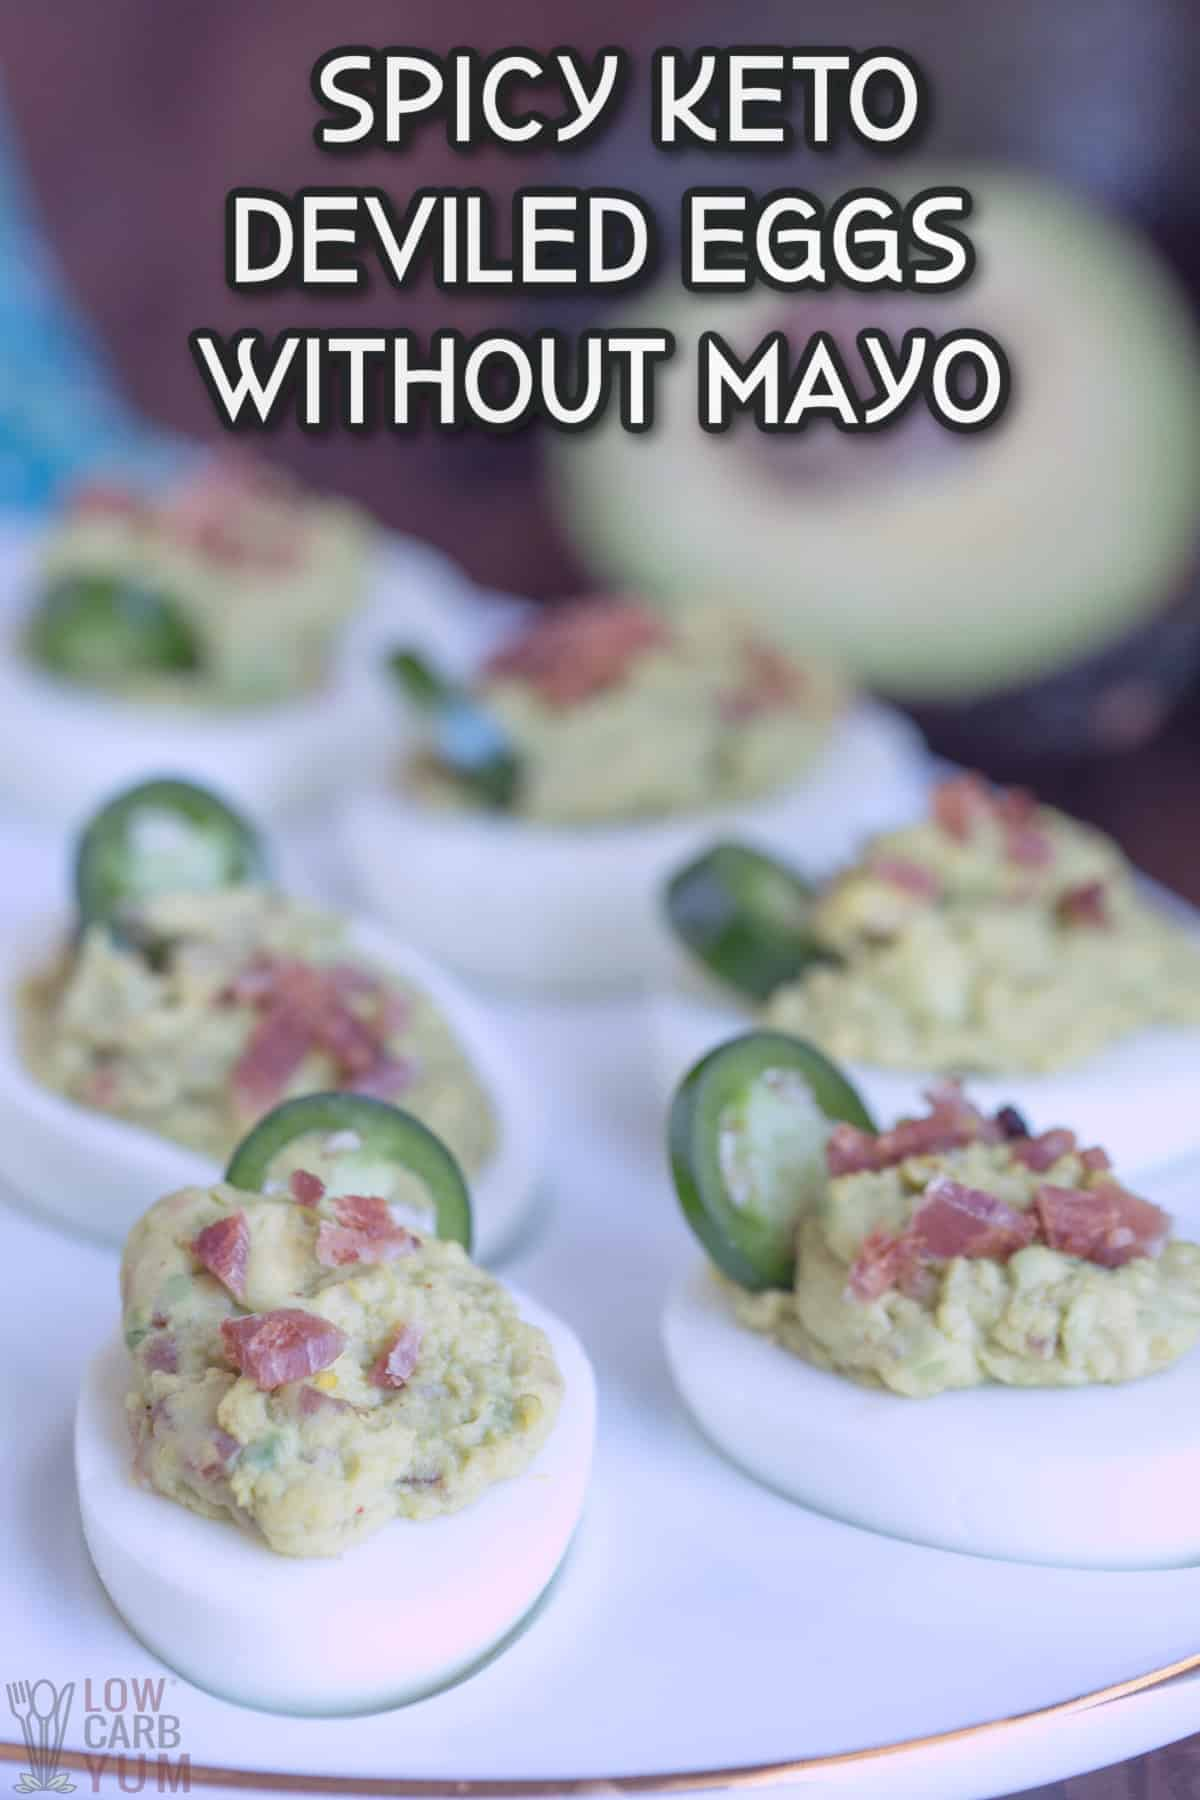 spicy keto deviled eggs without mayo recipe cover image